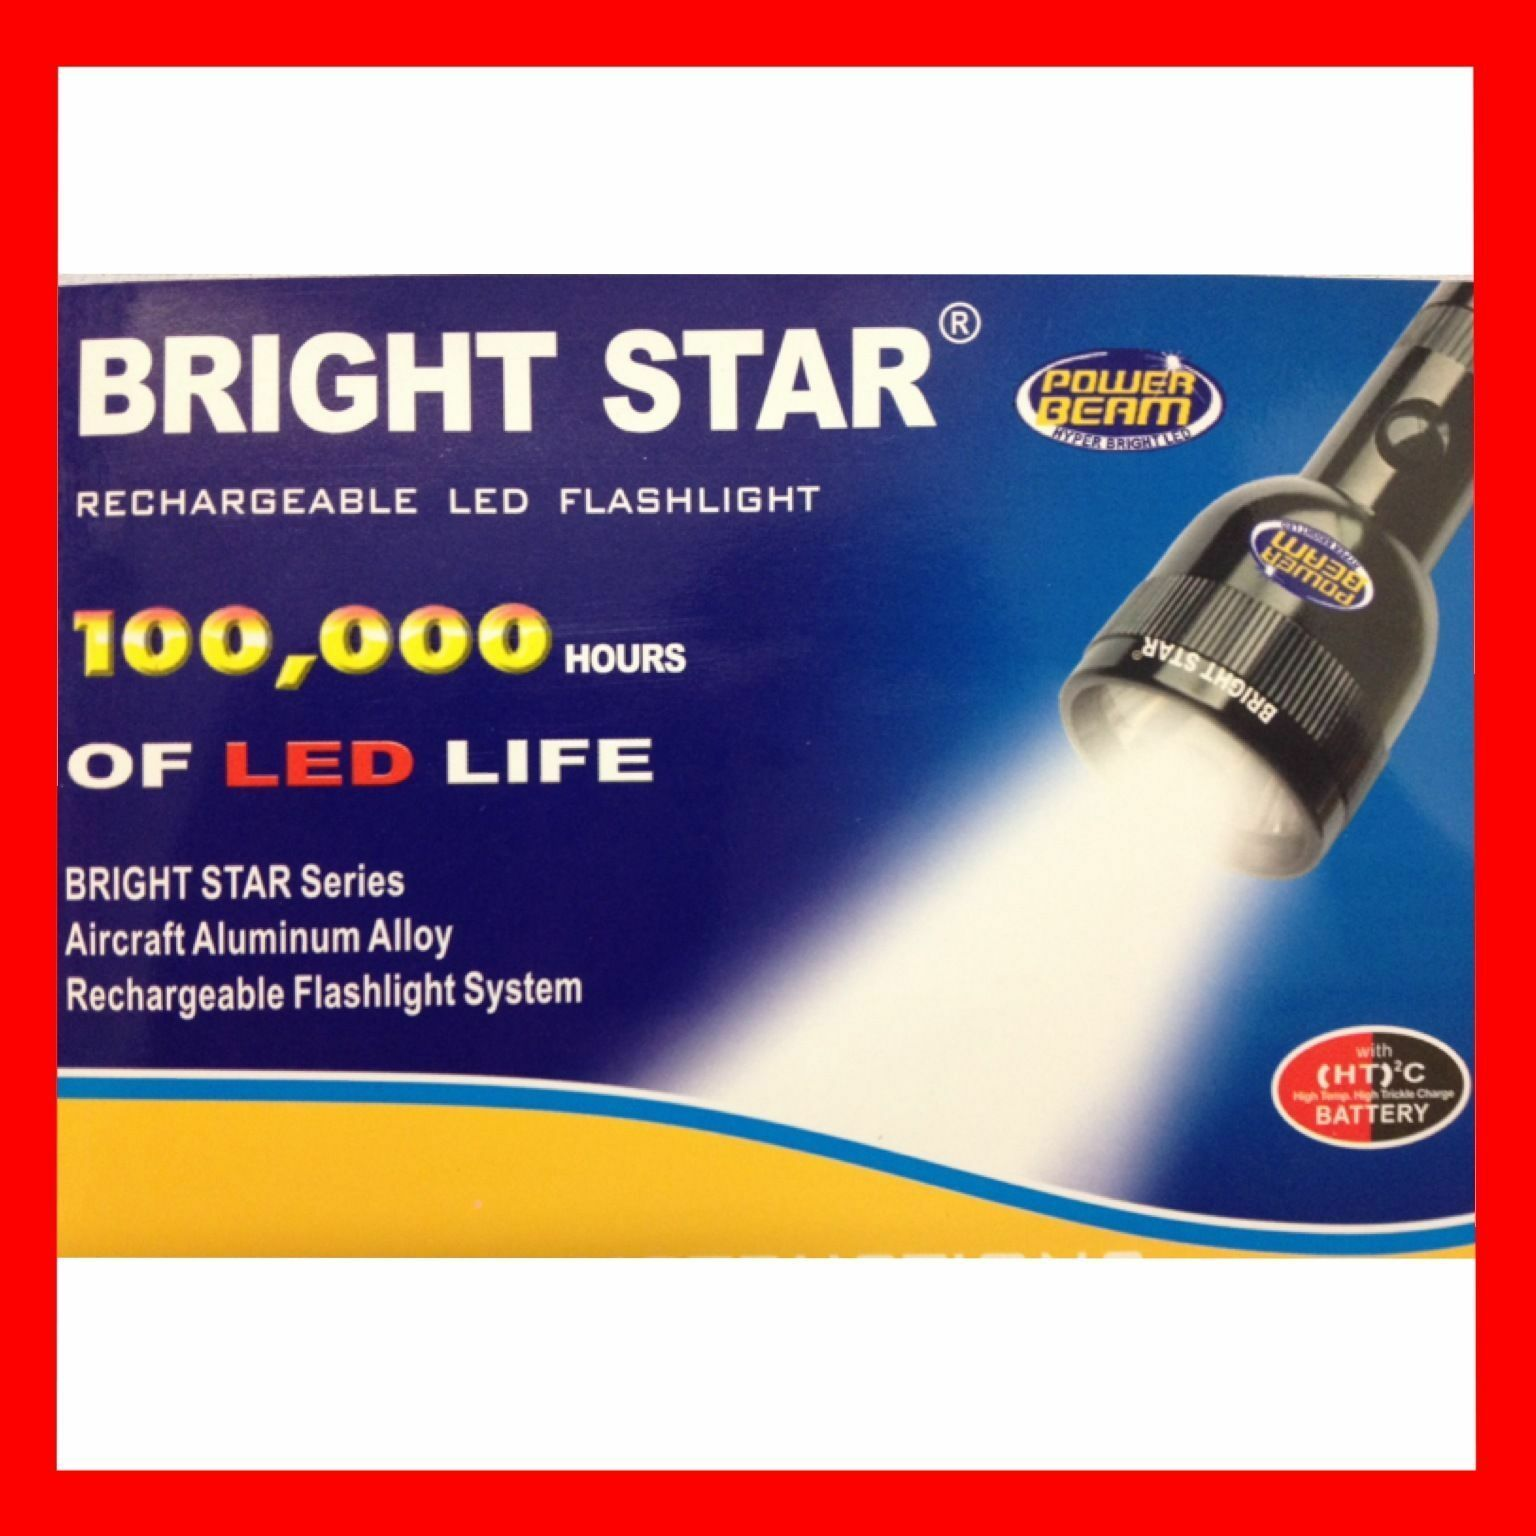 Bright Star Flashlight rechargable Led Flashlight Star With Power Beam bf5ad3